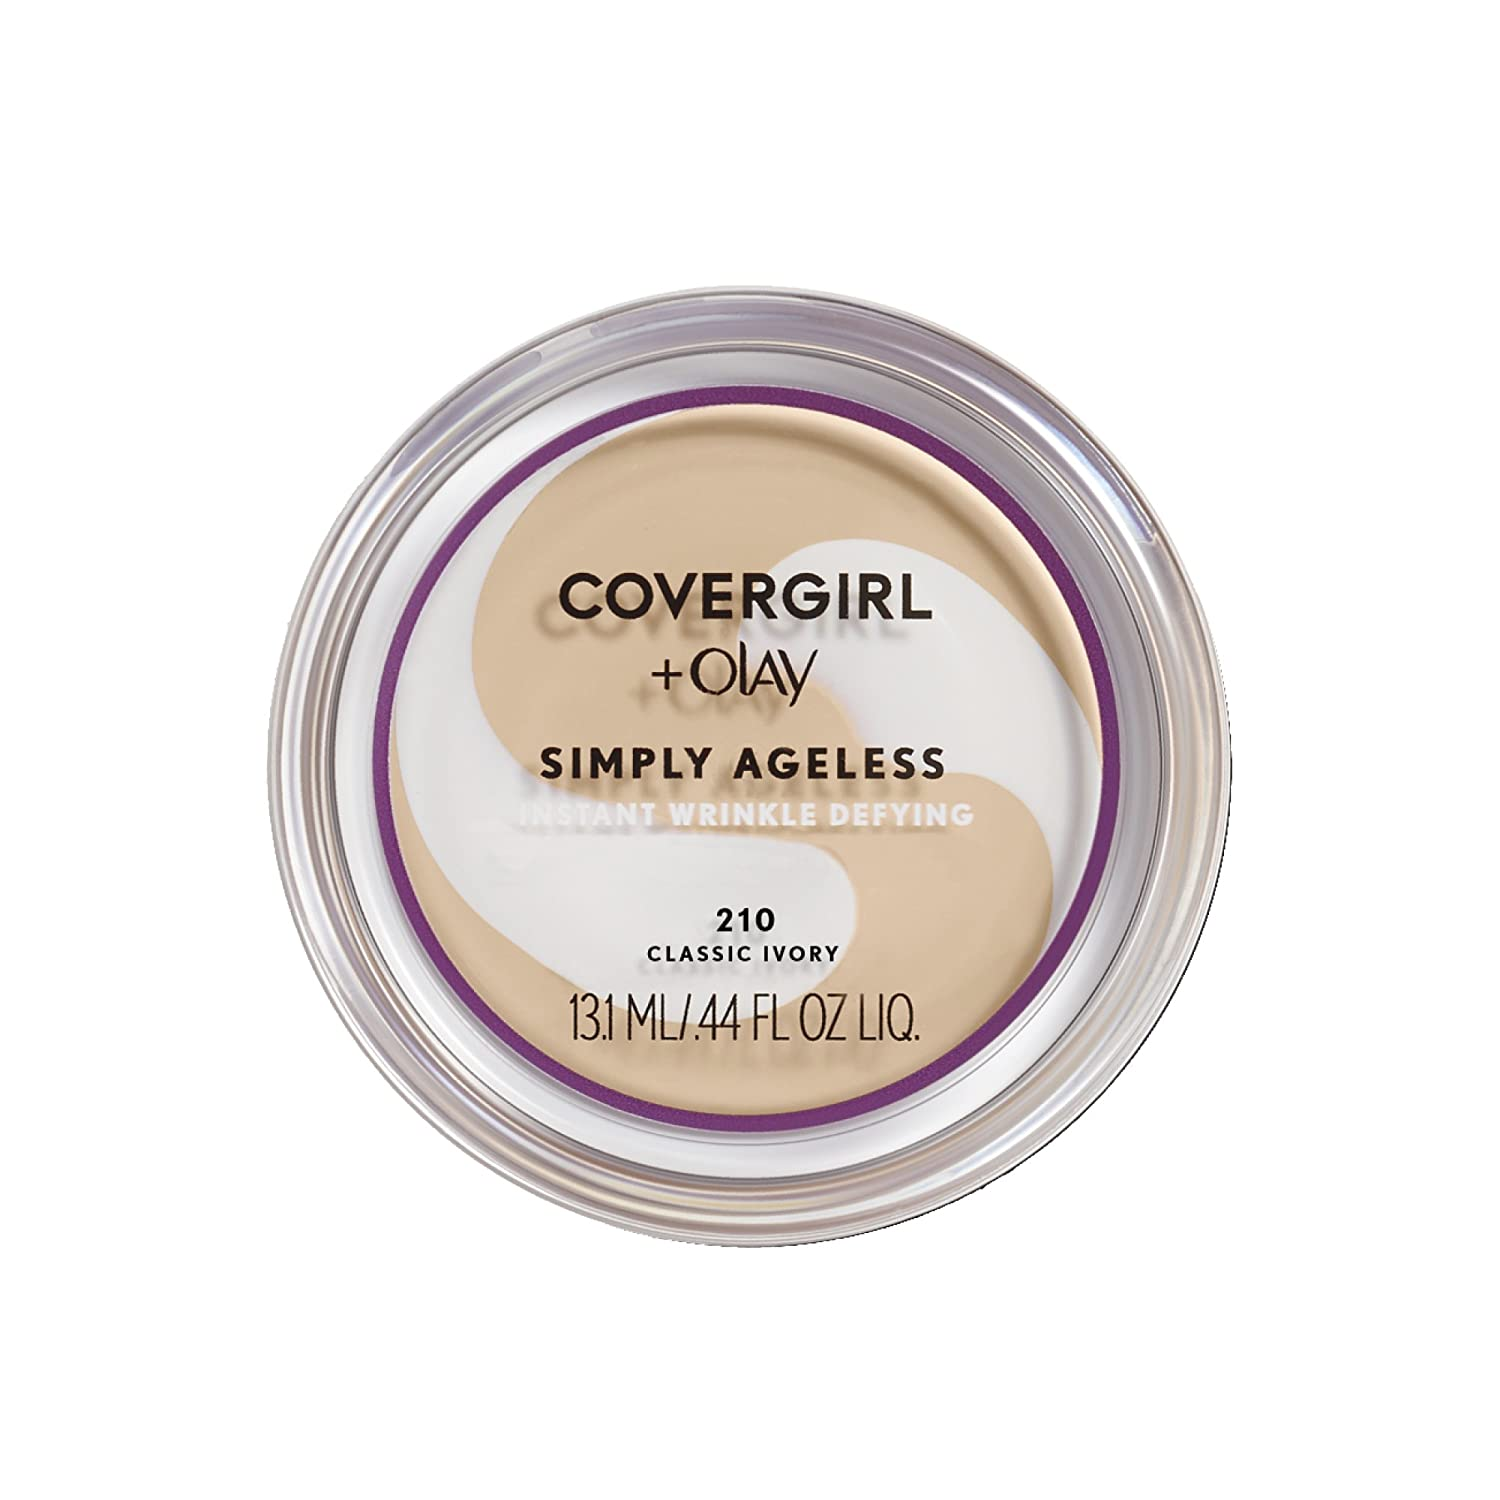 COVERGIRL - Simply Ageless Instant Wrinkle Defying Foundation - Packaging May Vary Coty